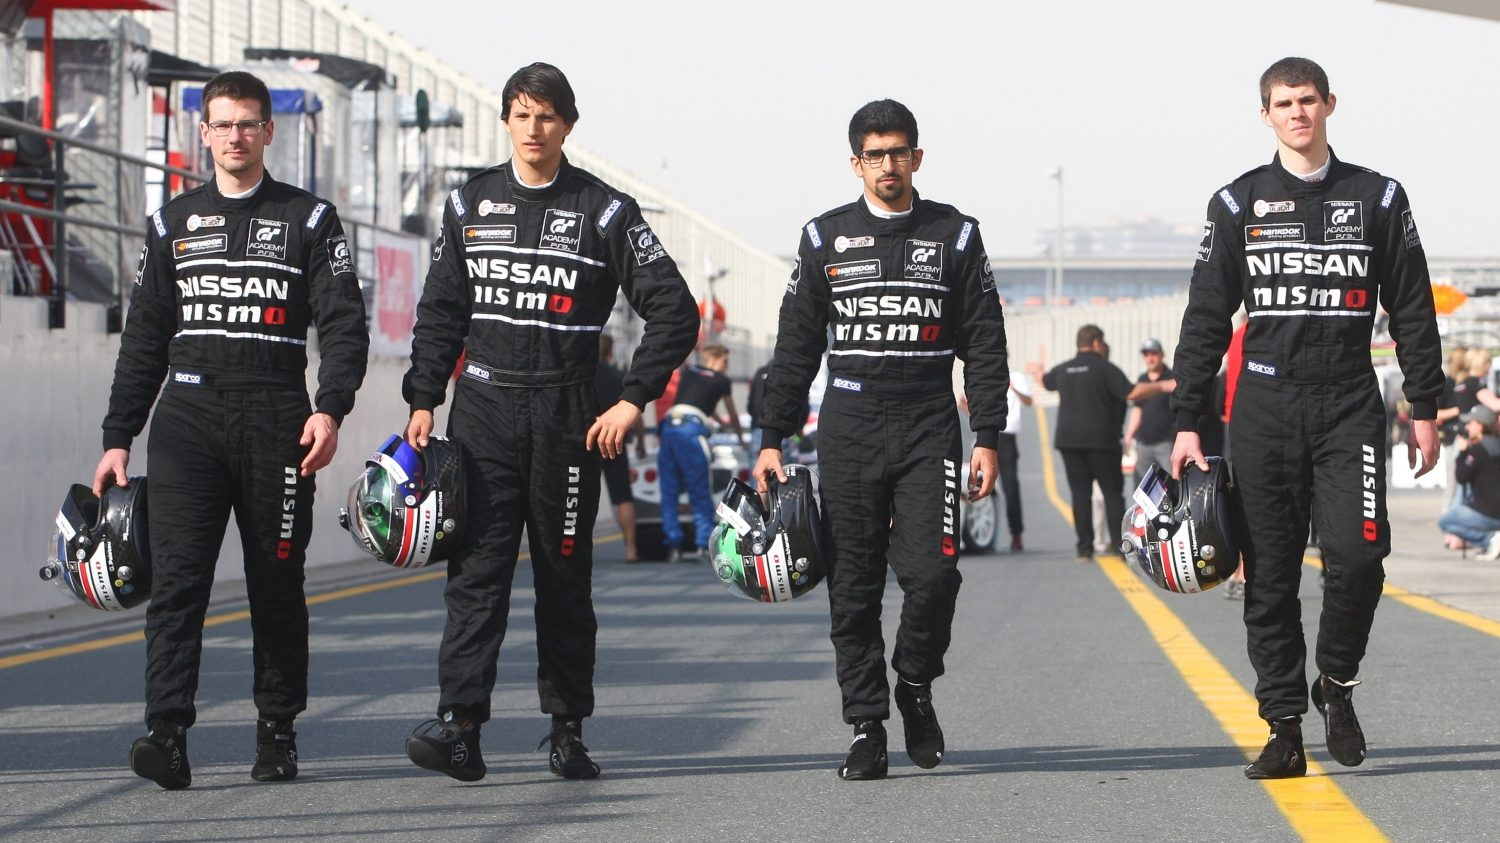 GT Academy gallery. Suited up drivers on the track.